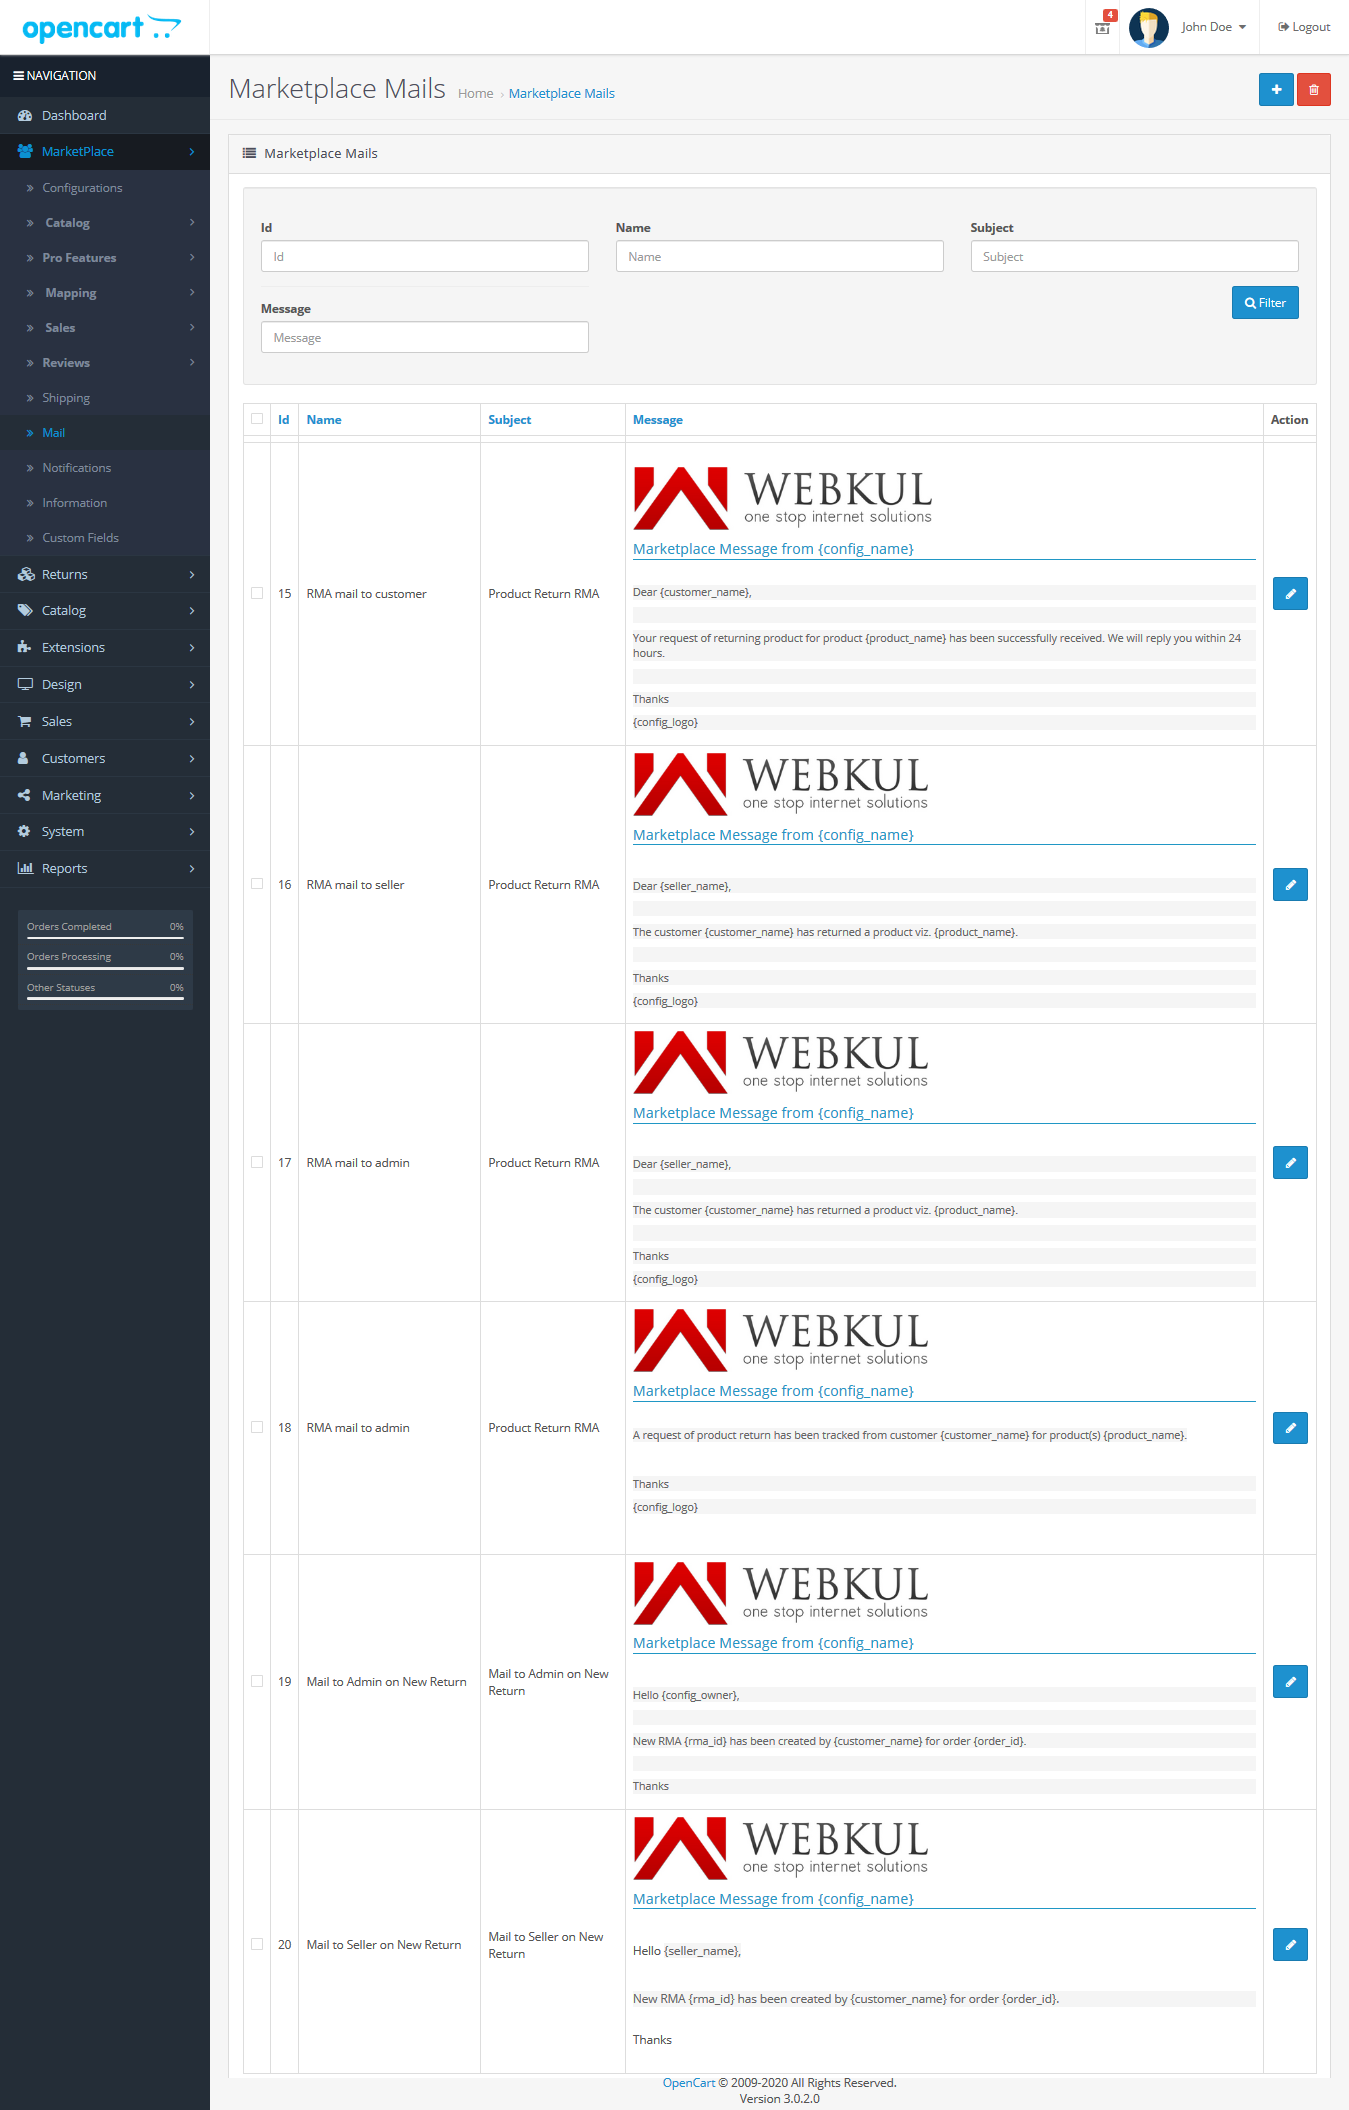 webkul_opencart_marketplace_rma_extension_mail_configuration_for_email_notifications